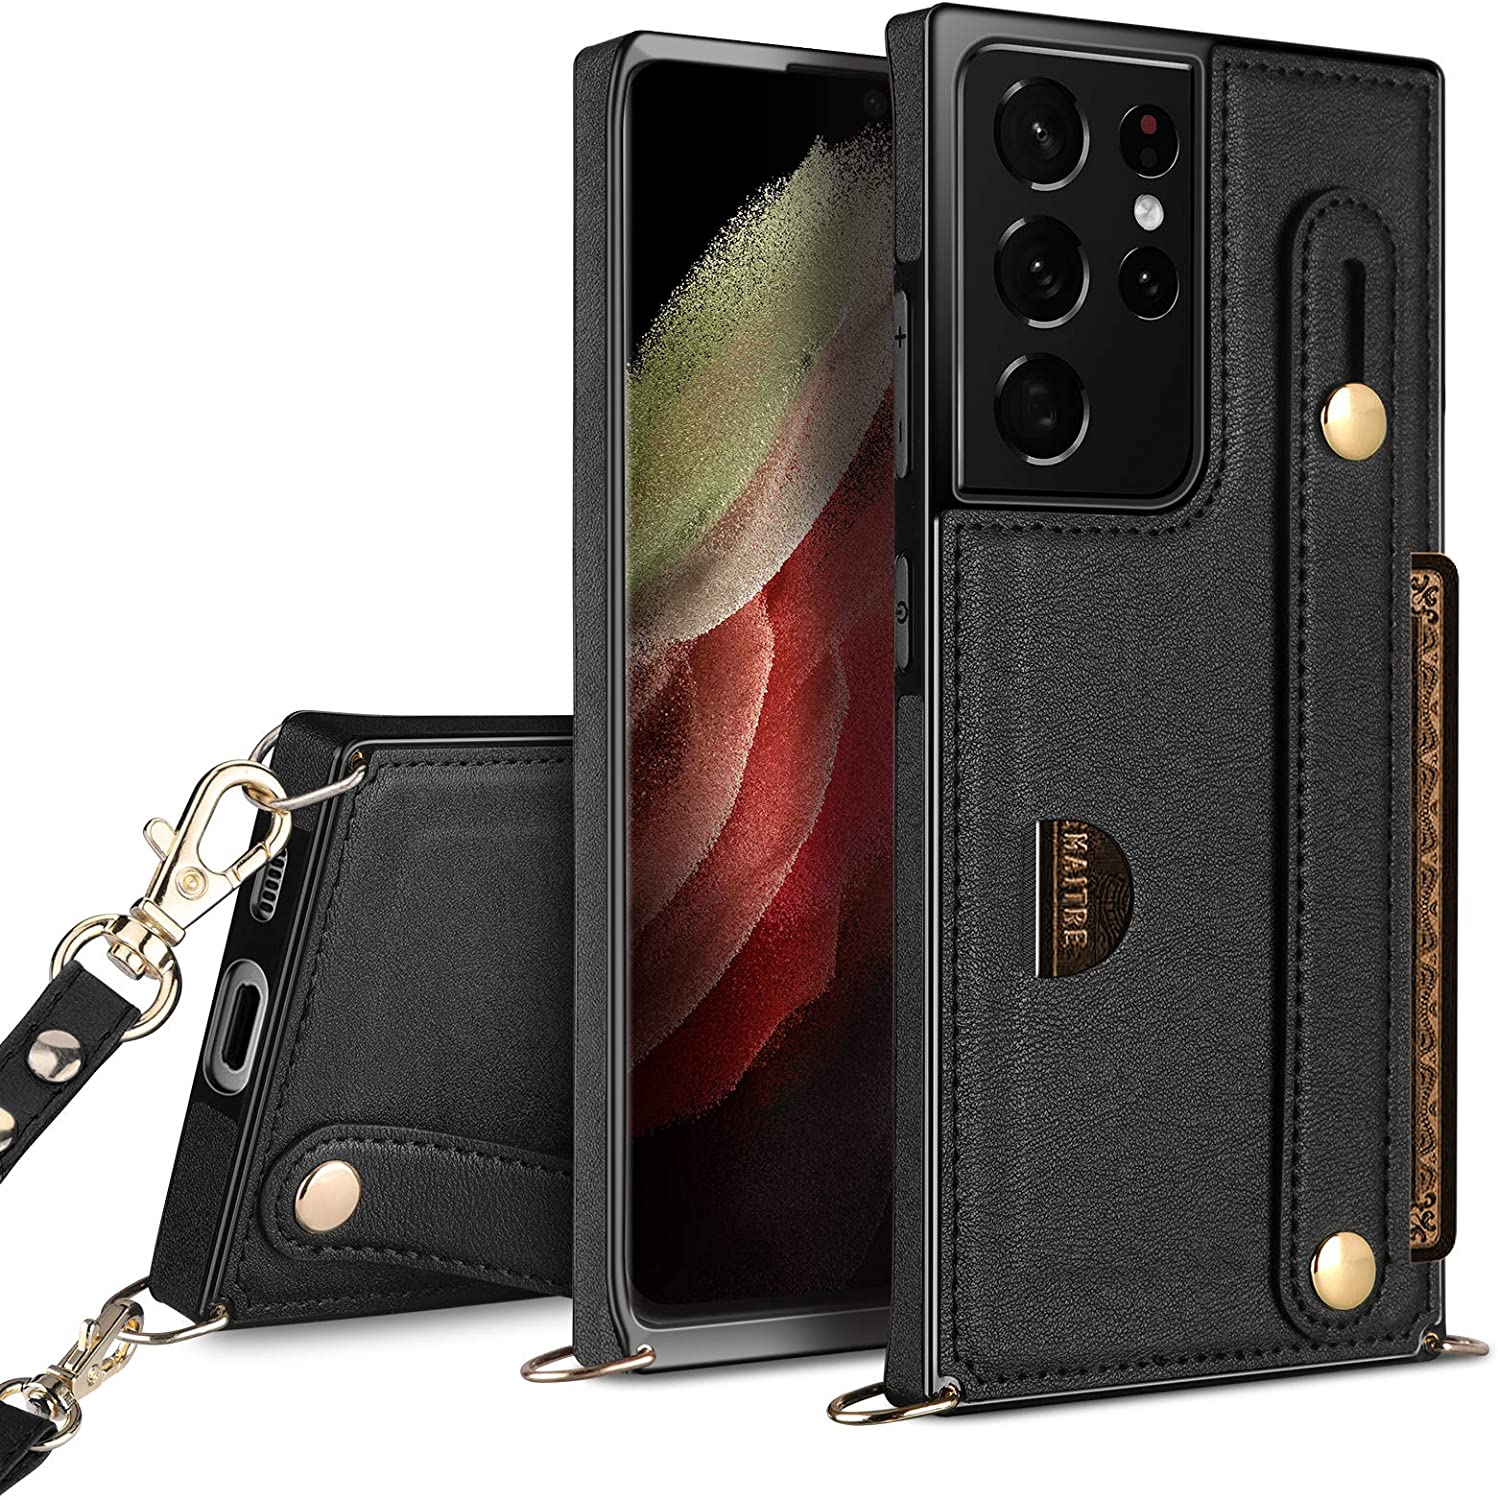 HianDier Compatible with Samsung Galaxy S21 Ultra Wallet Case 5G 6.8 Inches Slim Protective Case with Hand Strap Holder Kickstand Lanyard Credit Card Slot Soft PU Leather Square Cover, Black